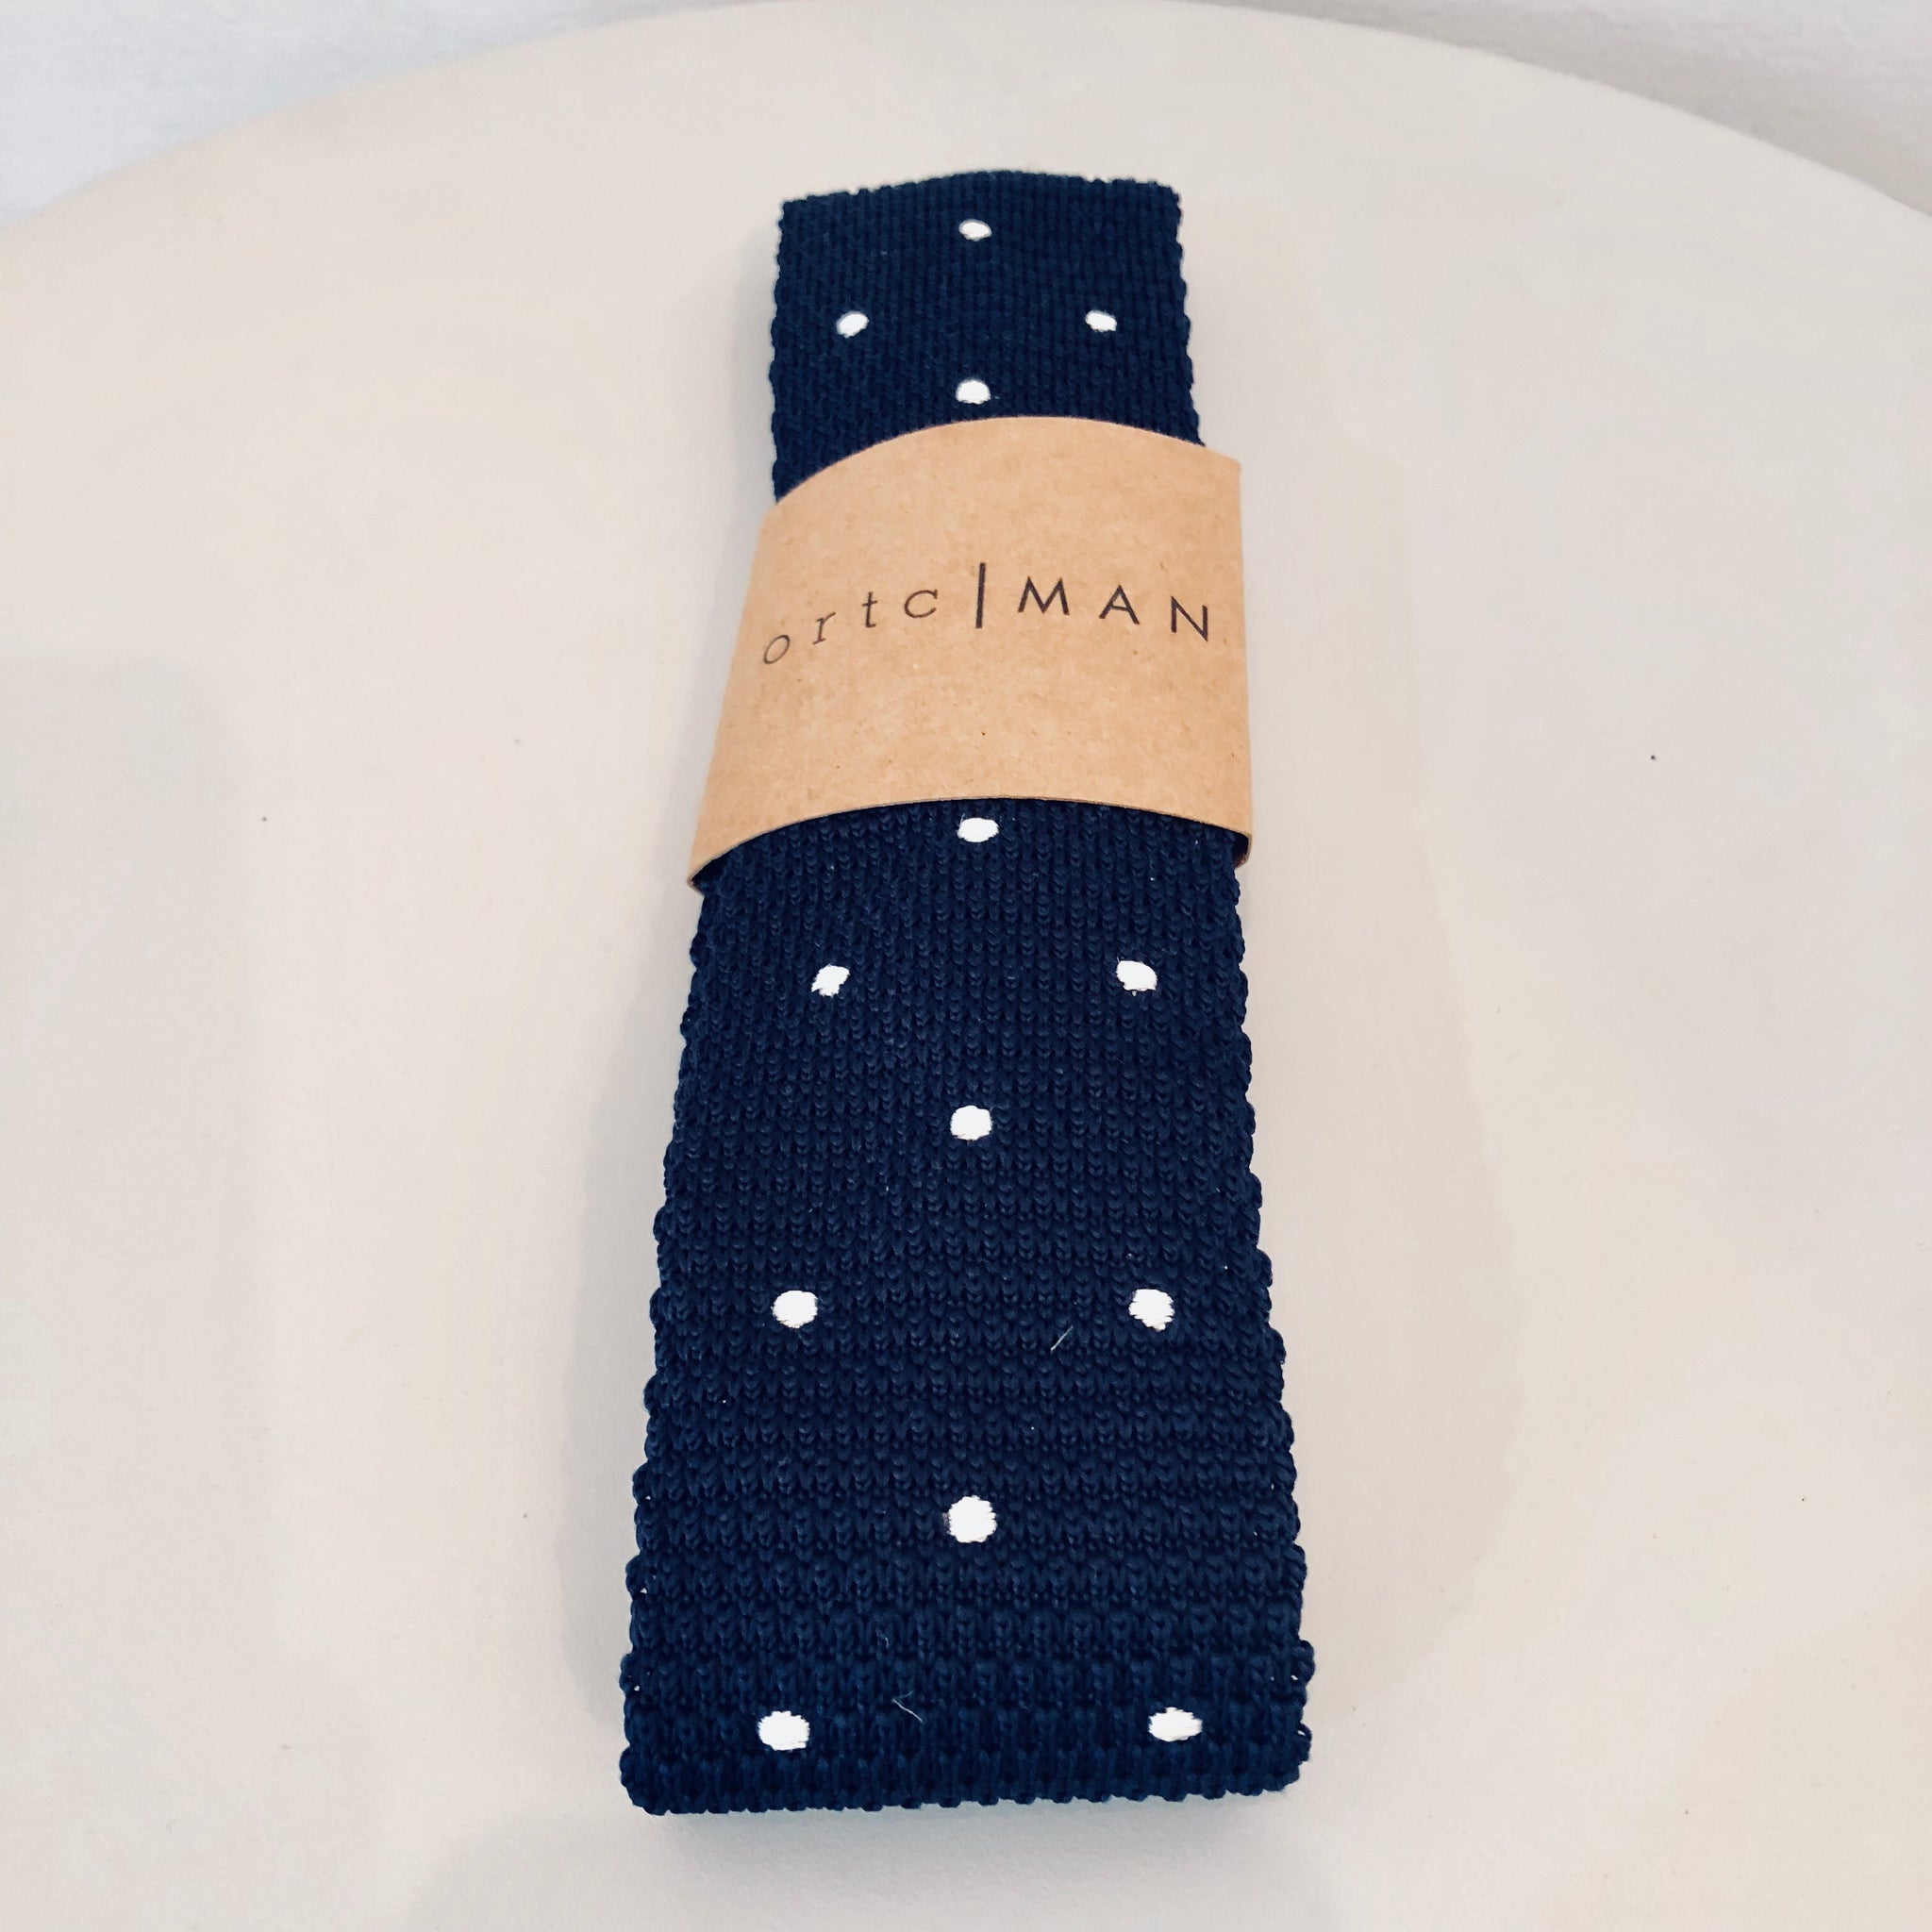 Ortc MAN - Jack Hamilton Wool Knit Neck Tie